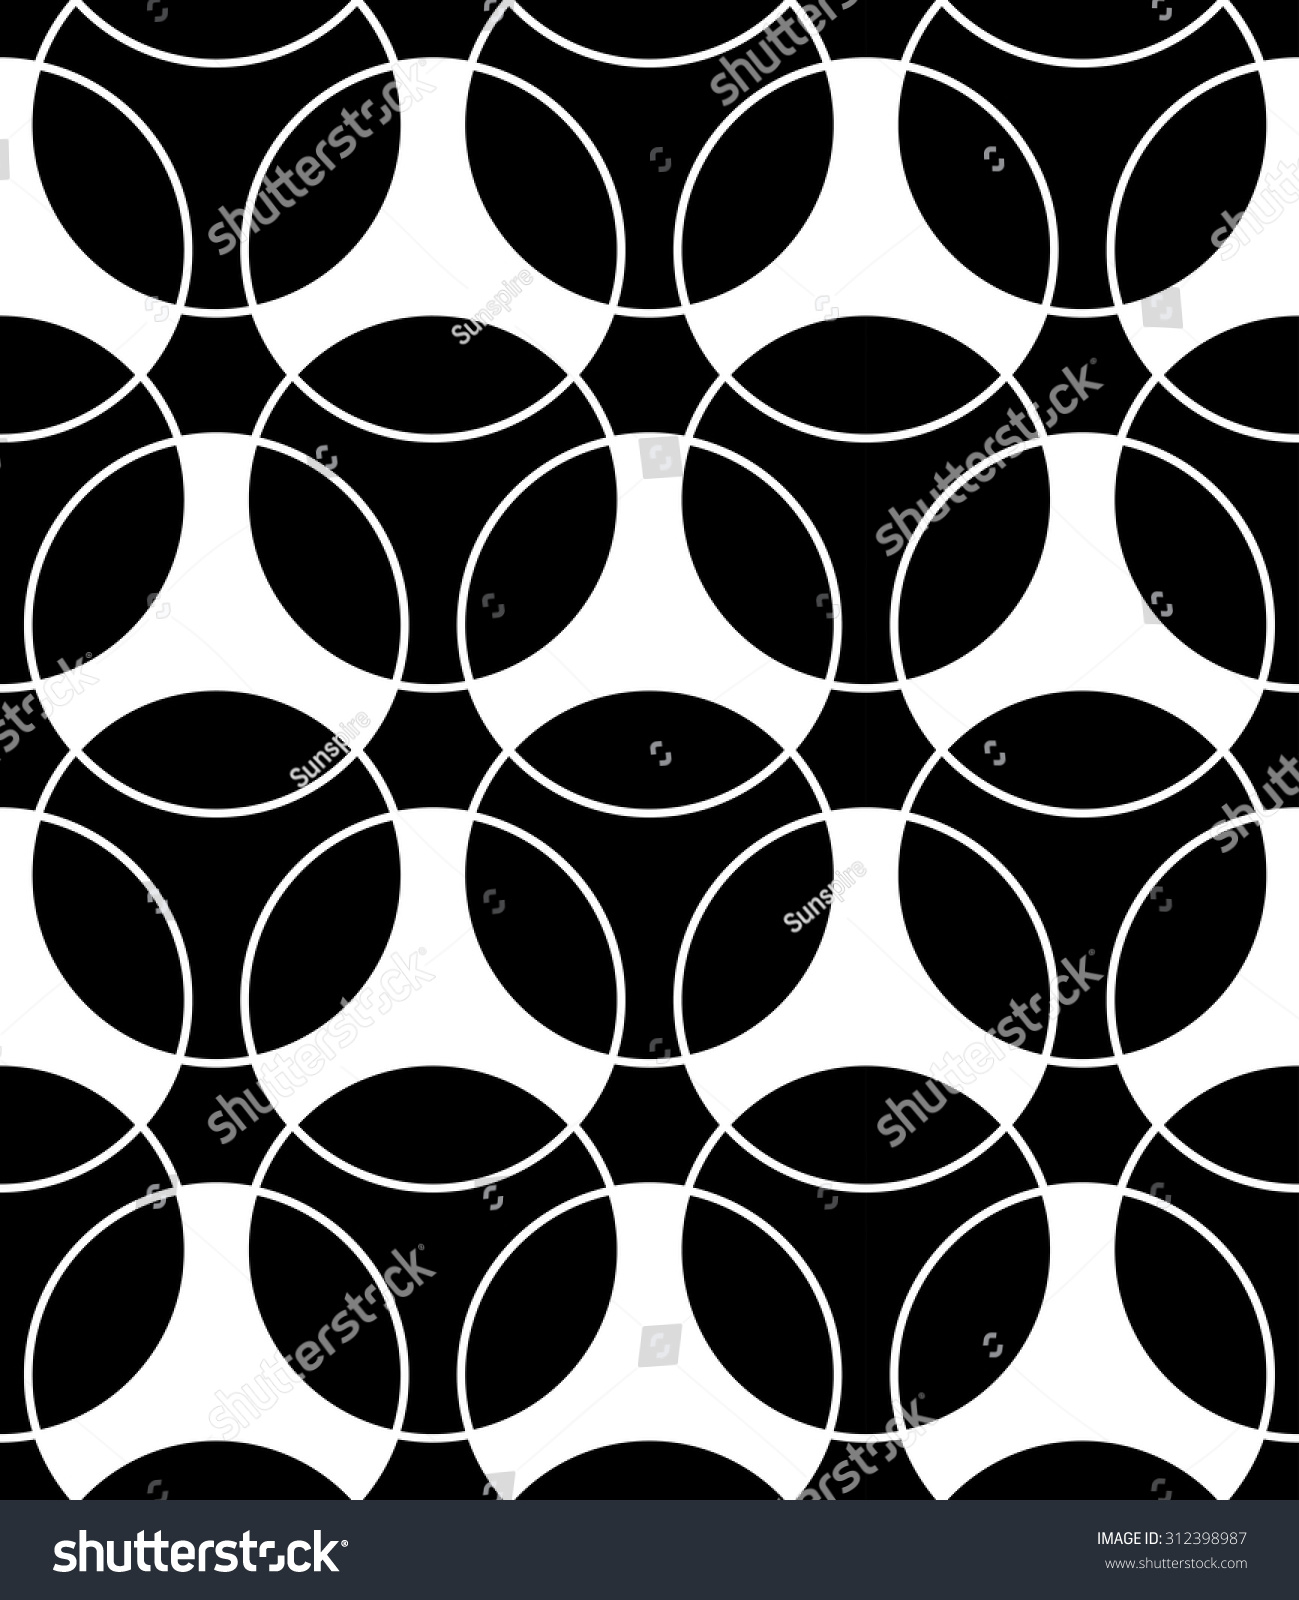 Bed sheets designs texture - Vector Modern Seamless Pattern Black And White Textile Print Stylish Background Abstract Texture